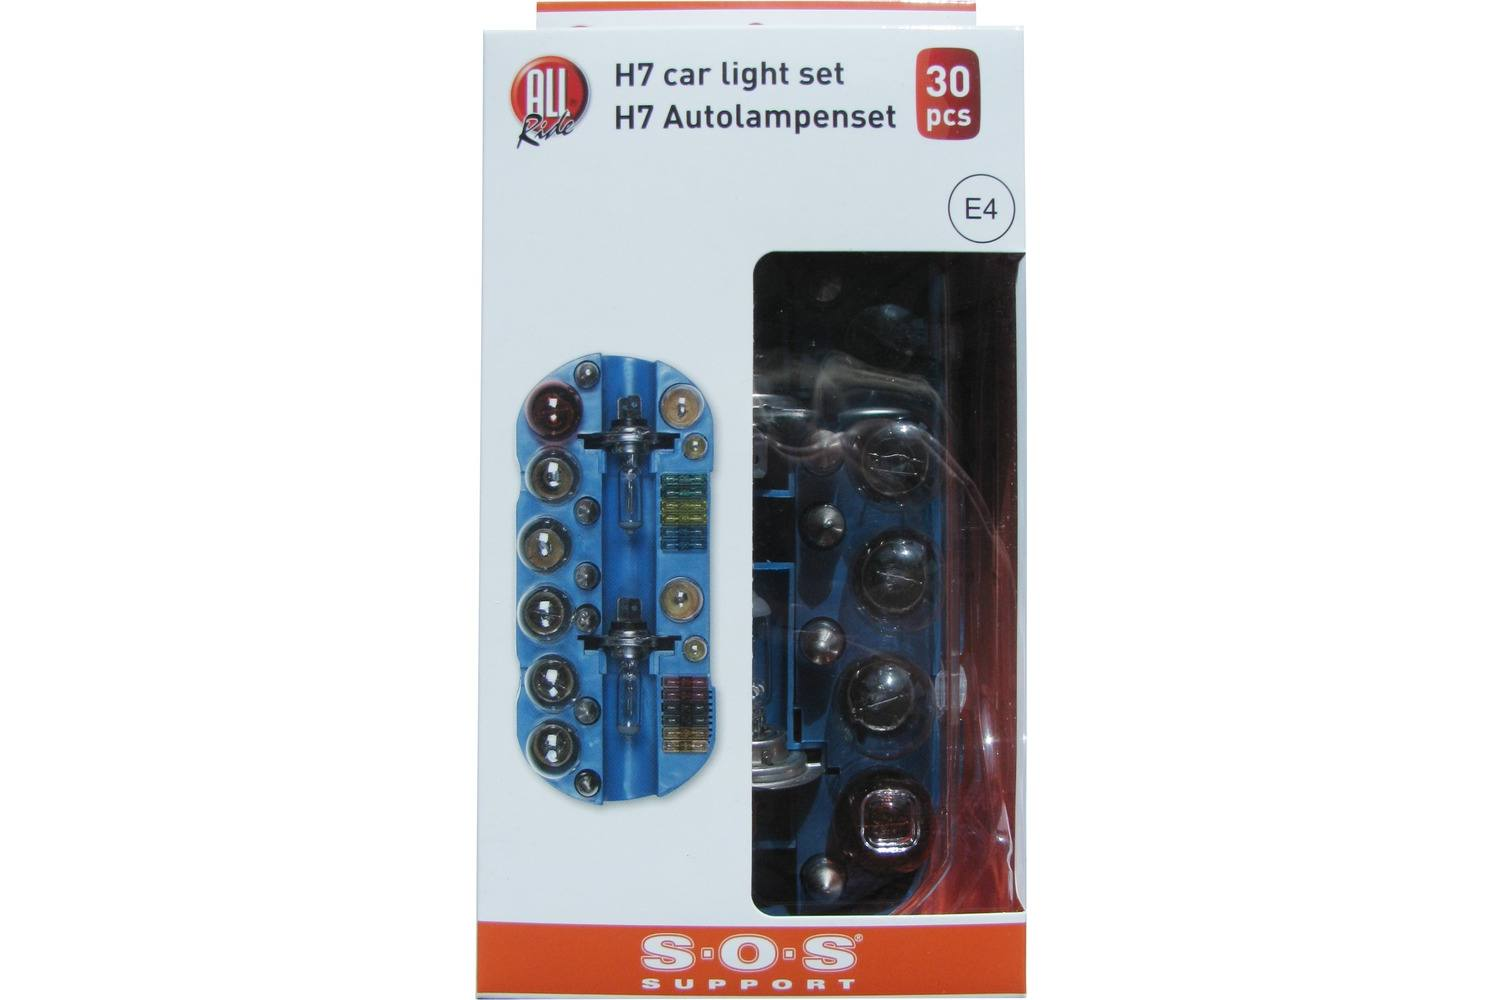 Car bulb set, AllRide SOS support, H7, 30 pieces 3